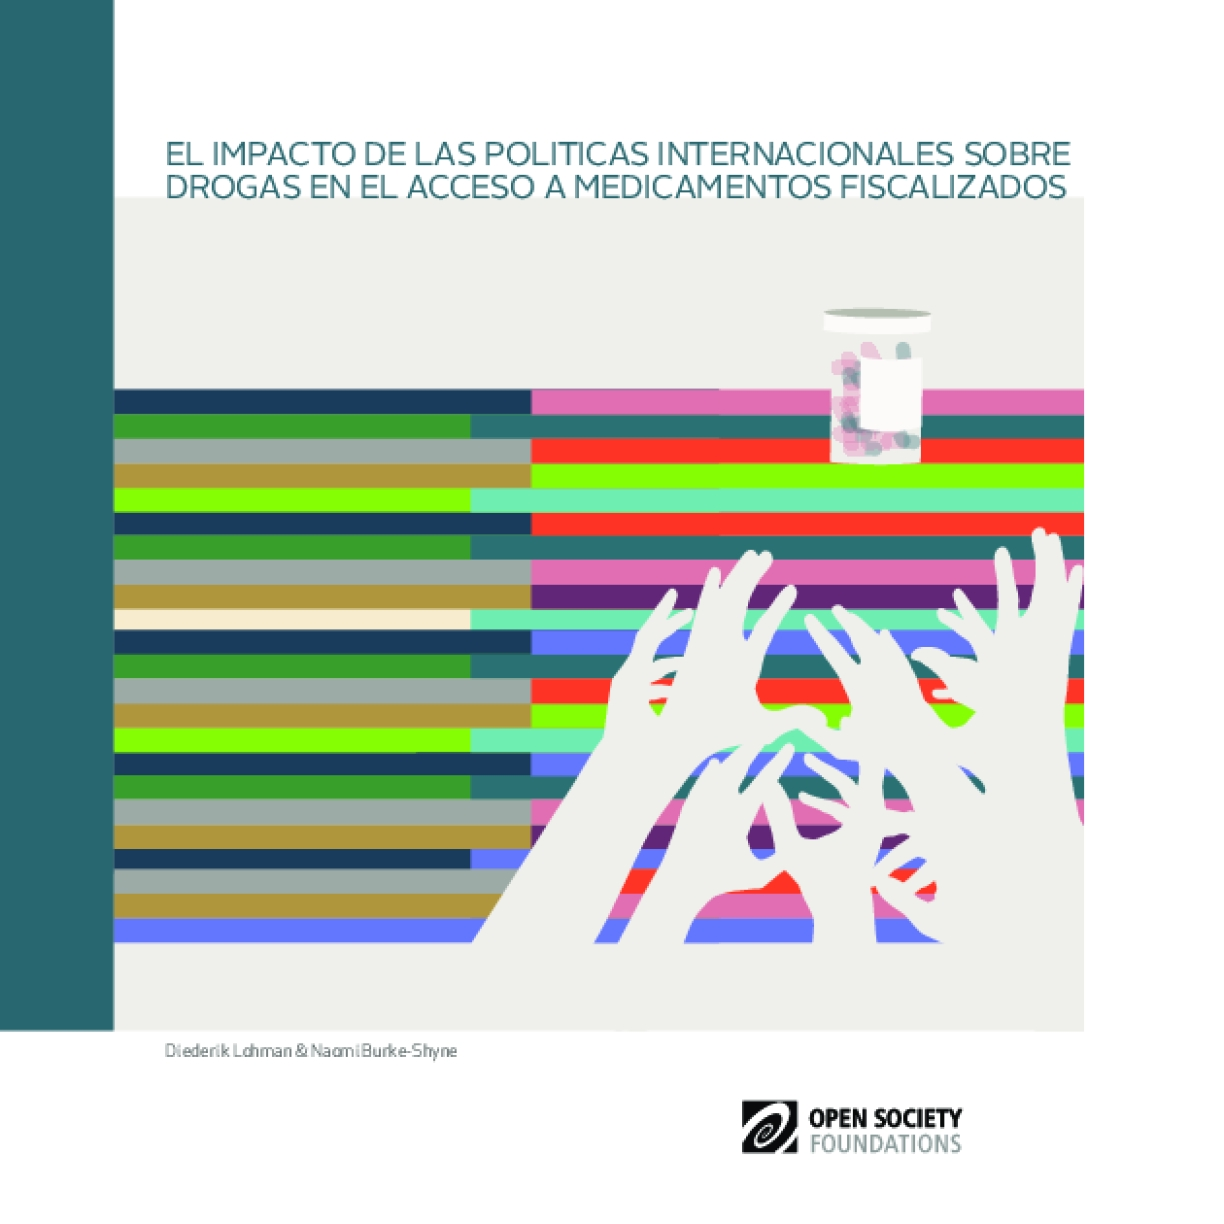 The Impact of International Drug Policy on Access to Controlled Medicines: Spanish